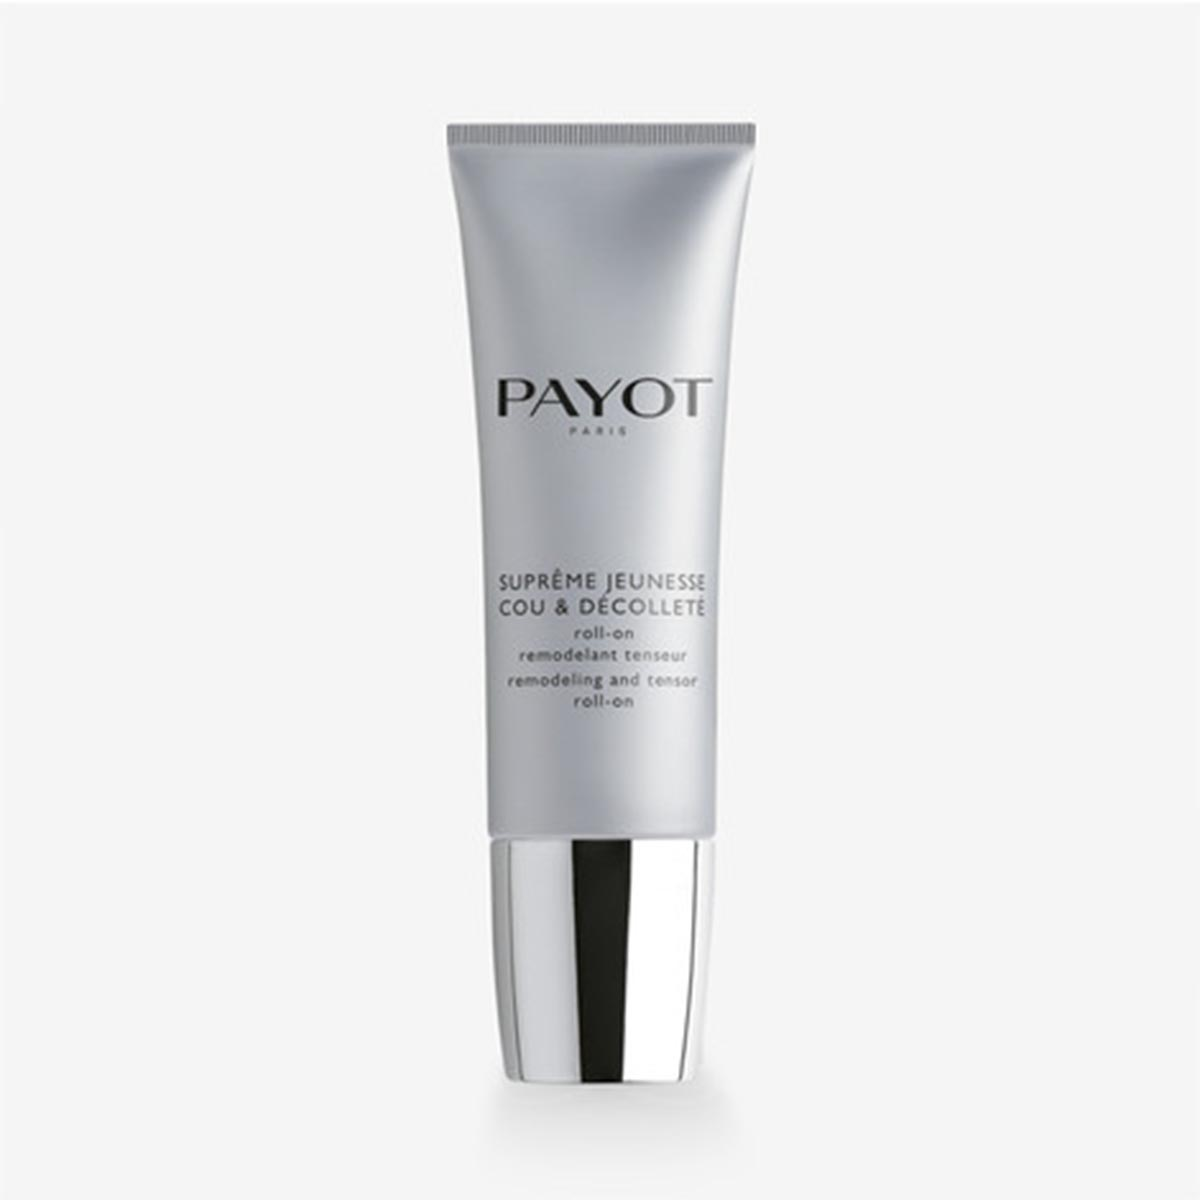 Payot supreme jeunesse cou decollette roll on 50ml